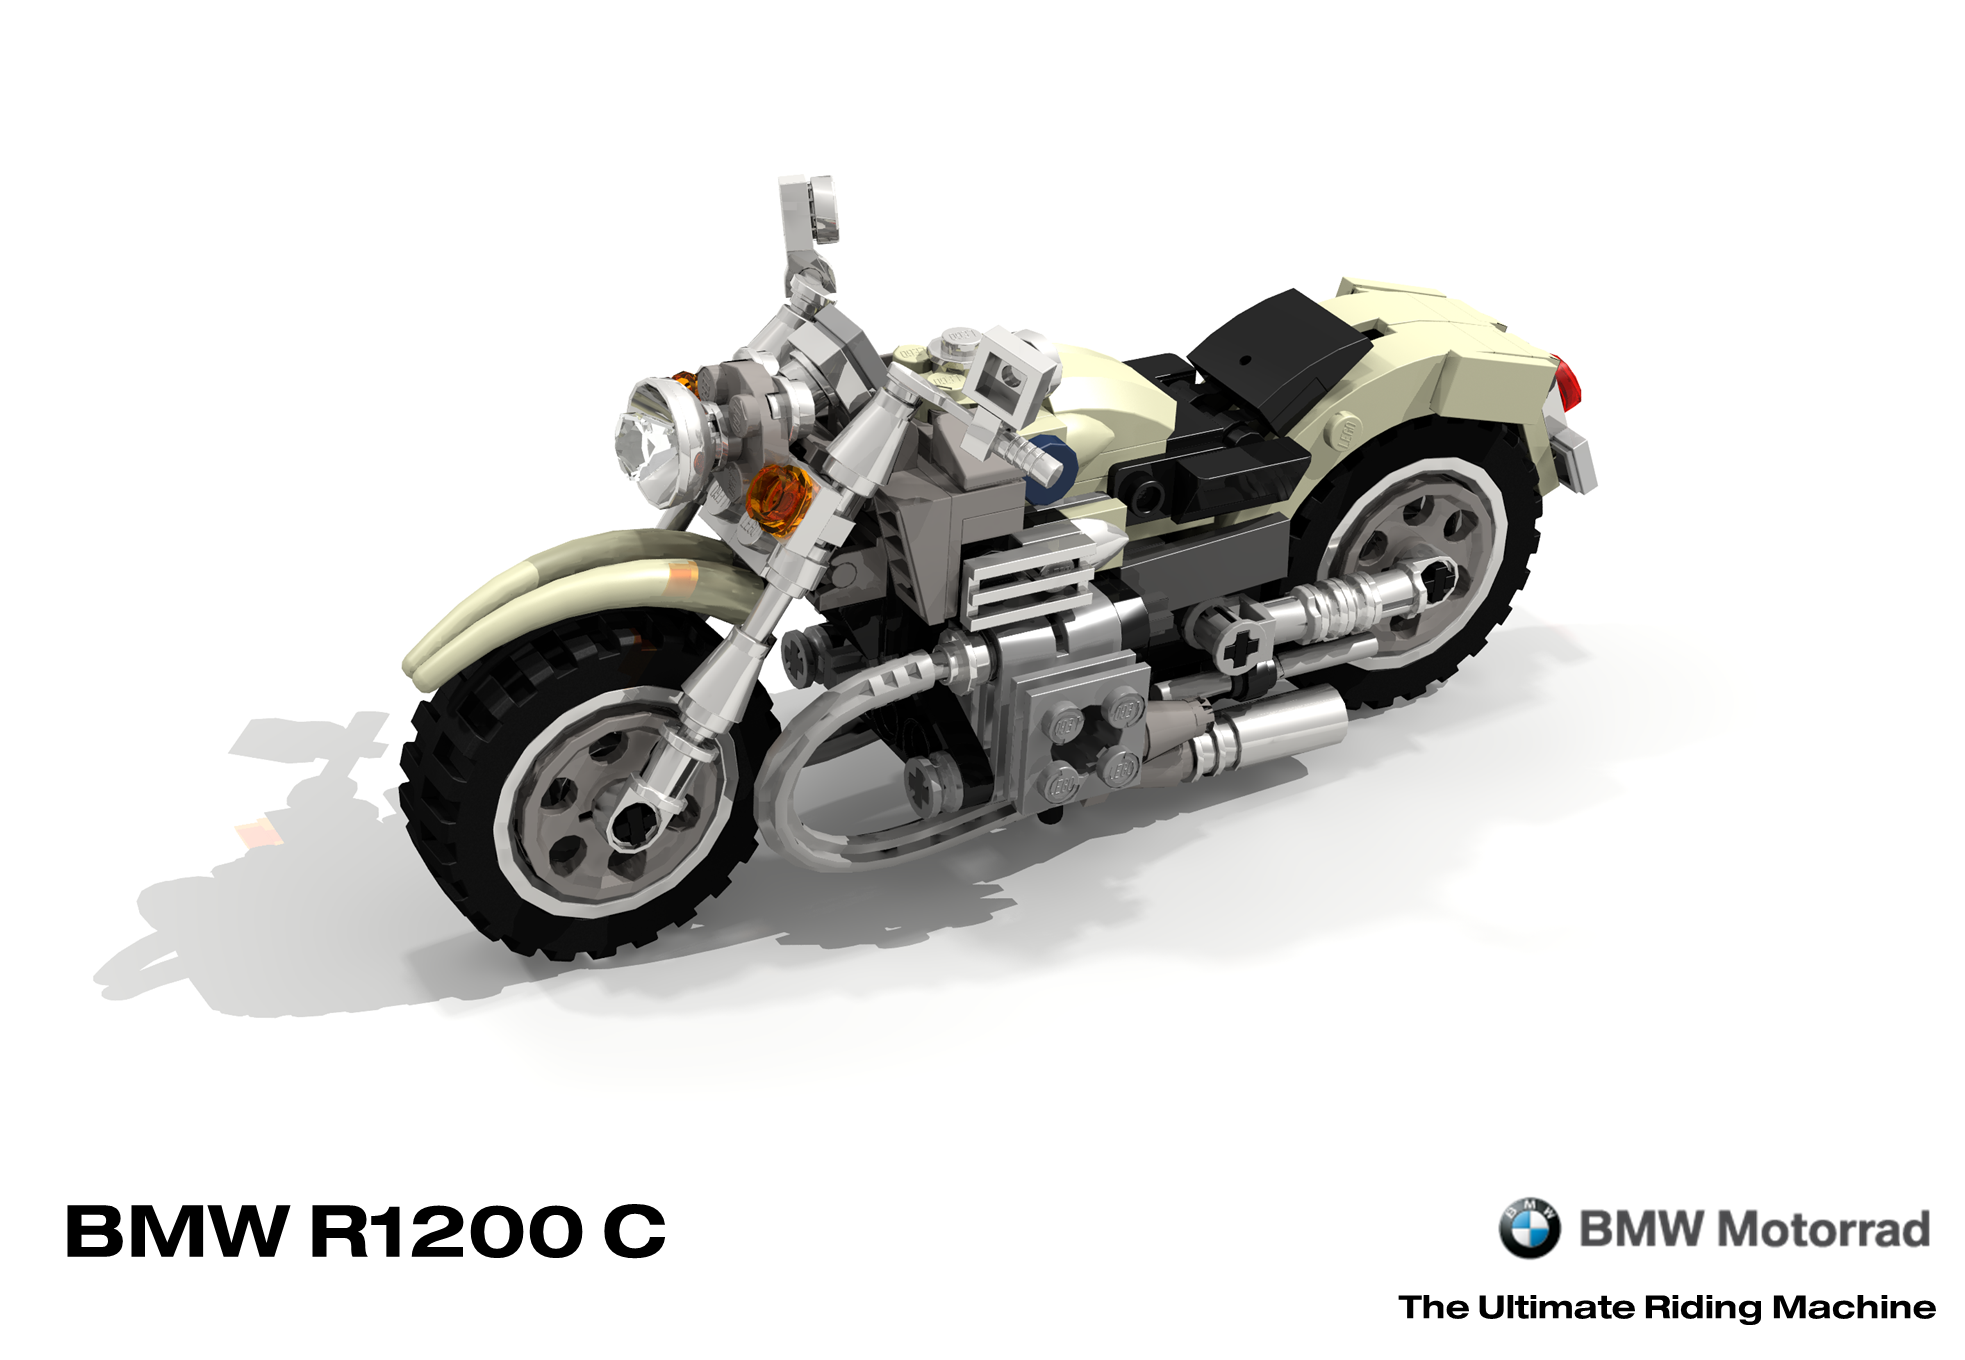 bmw_r1200c_motorcycle_06.png